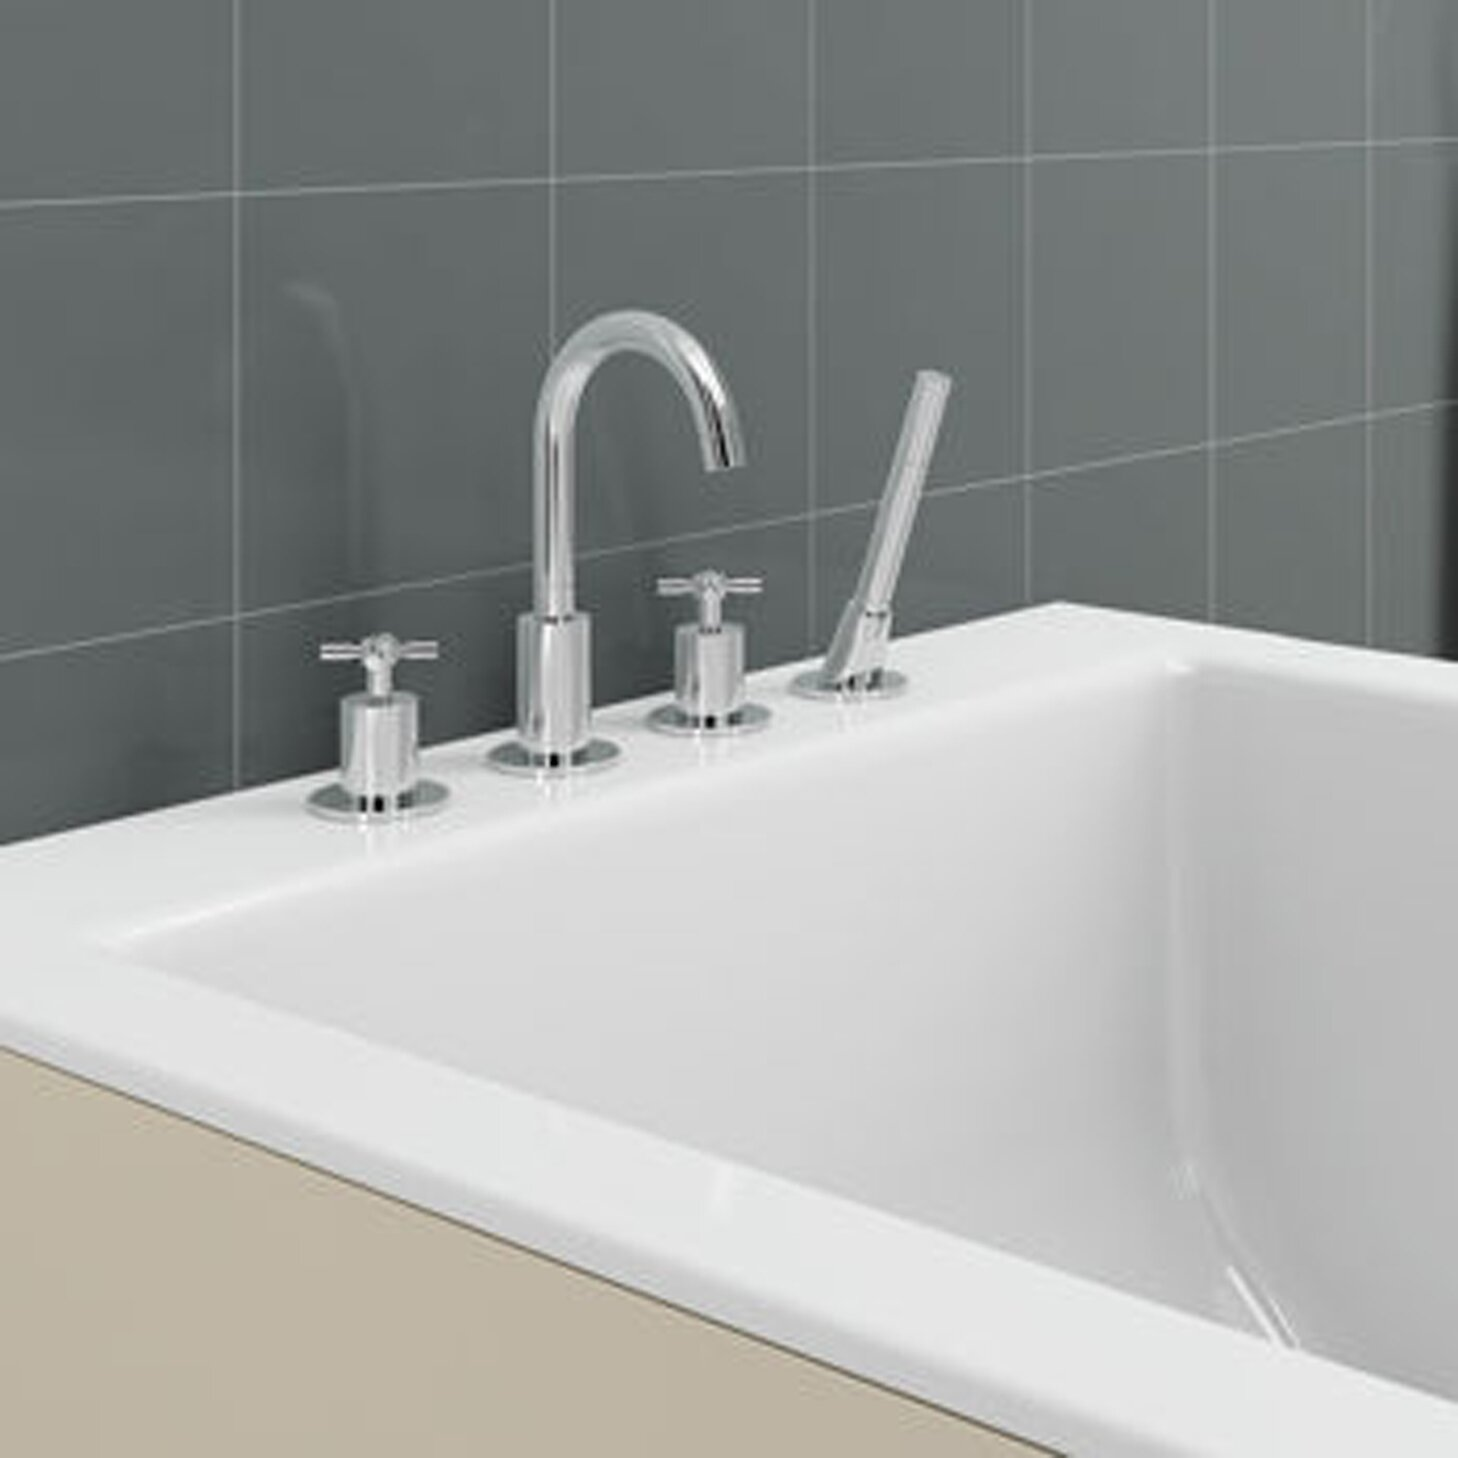 Handle Deck Mount Bathtub Faucet with Shower Wand amp; Reviews  Wayfair